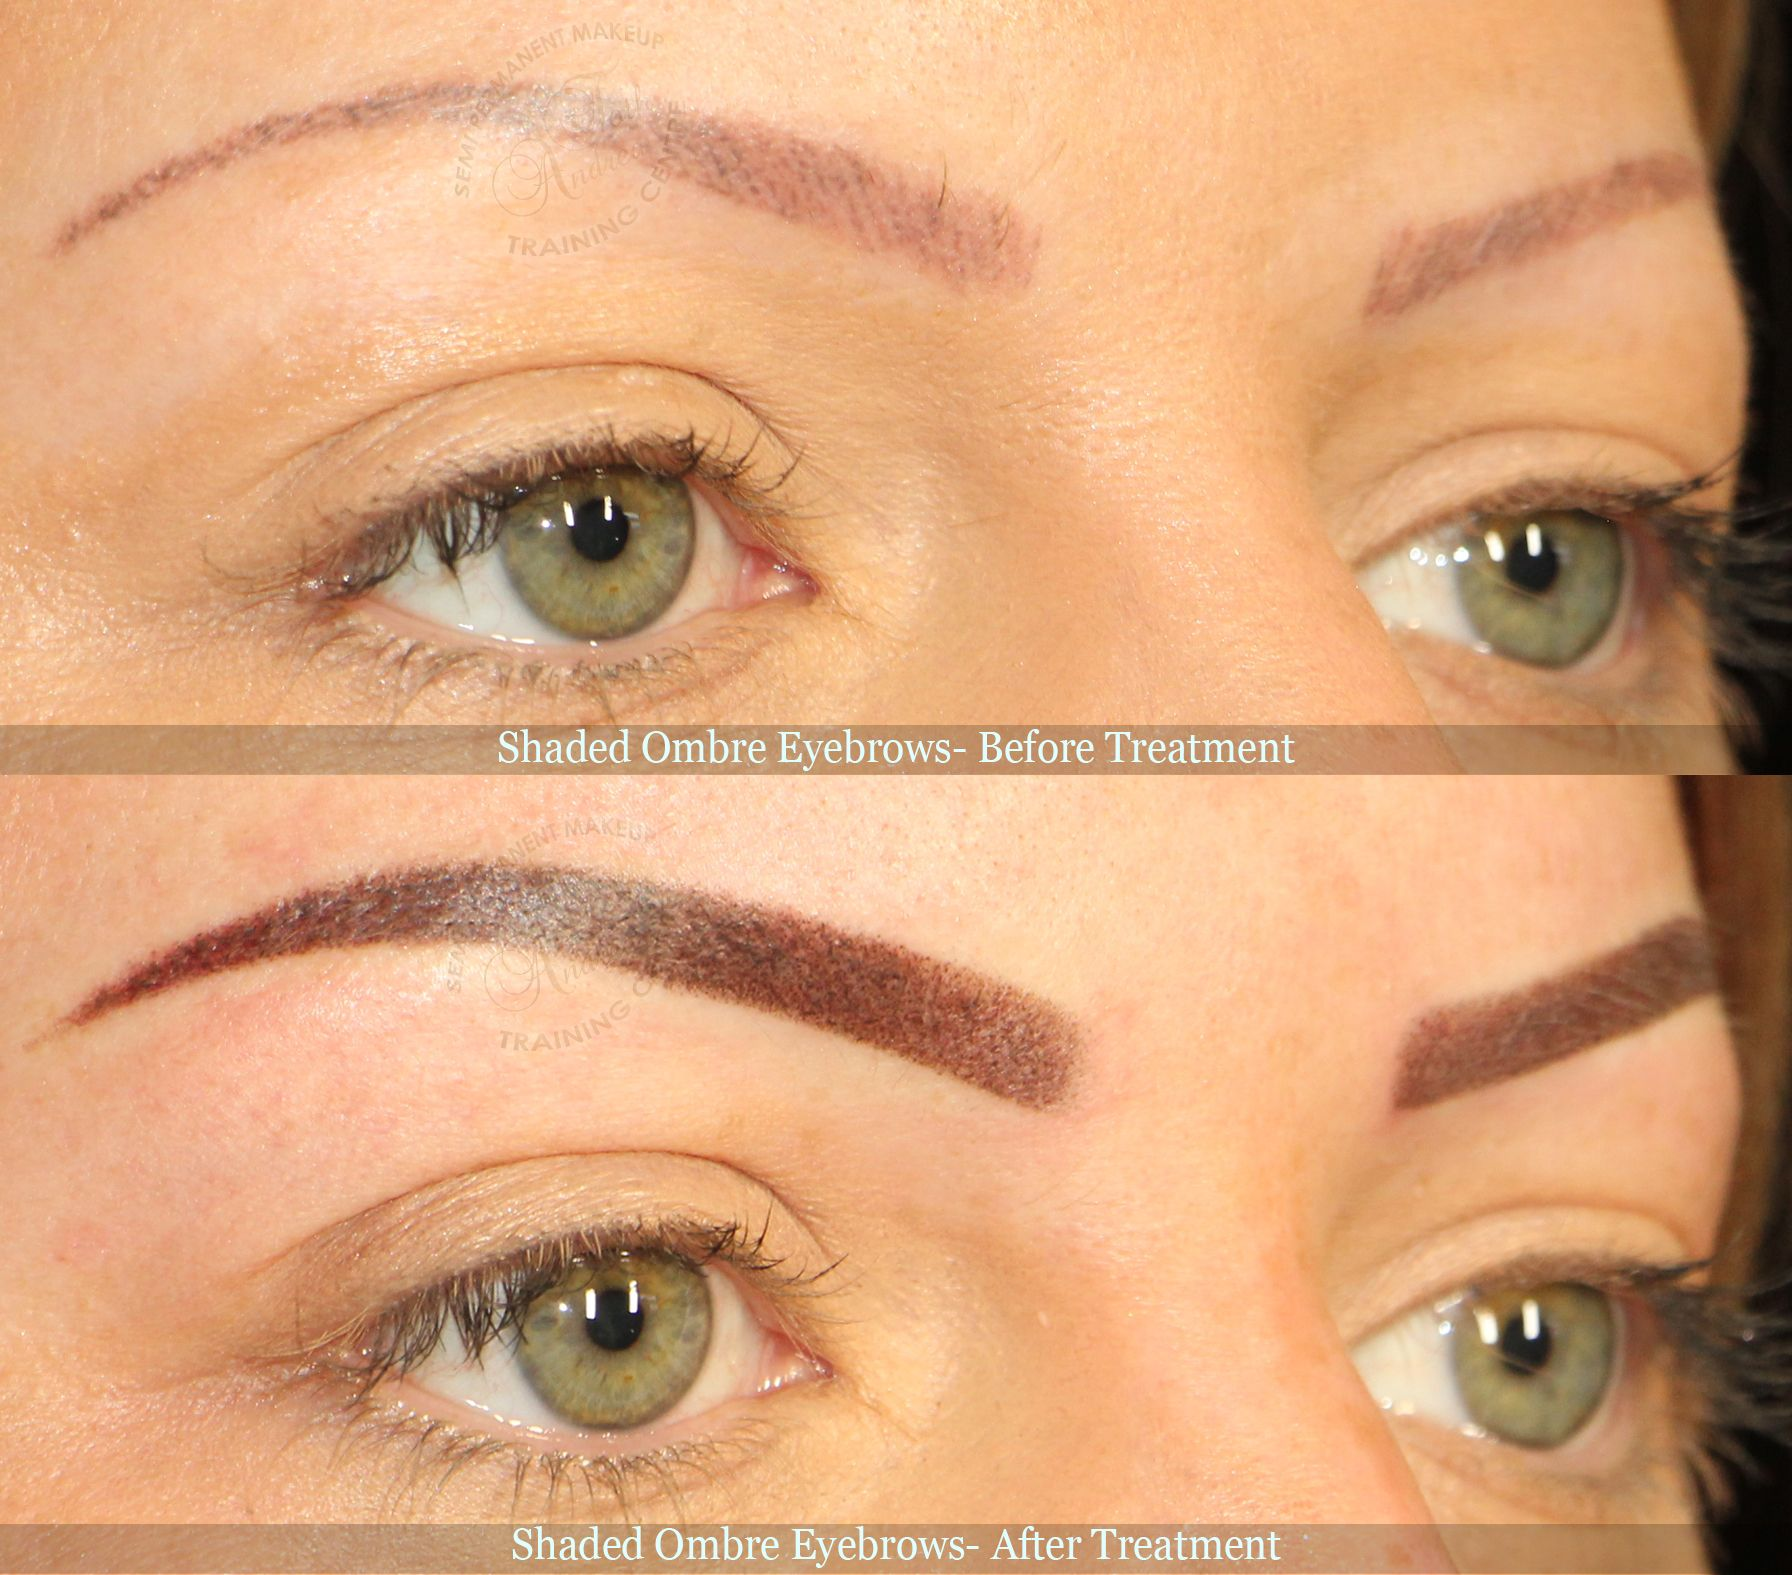 Shaded Ombre Eyebrows Before After Pictures What Are You